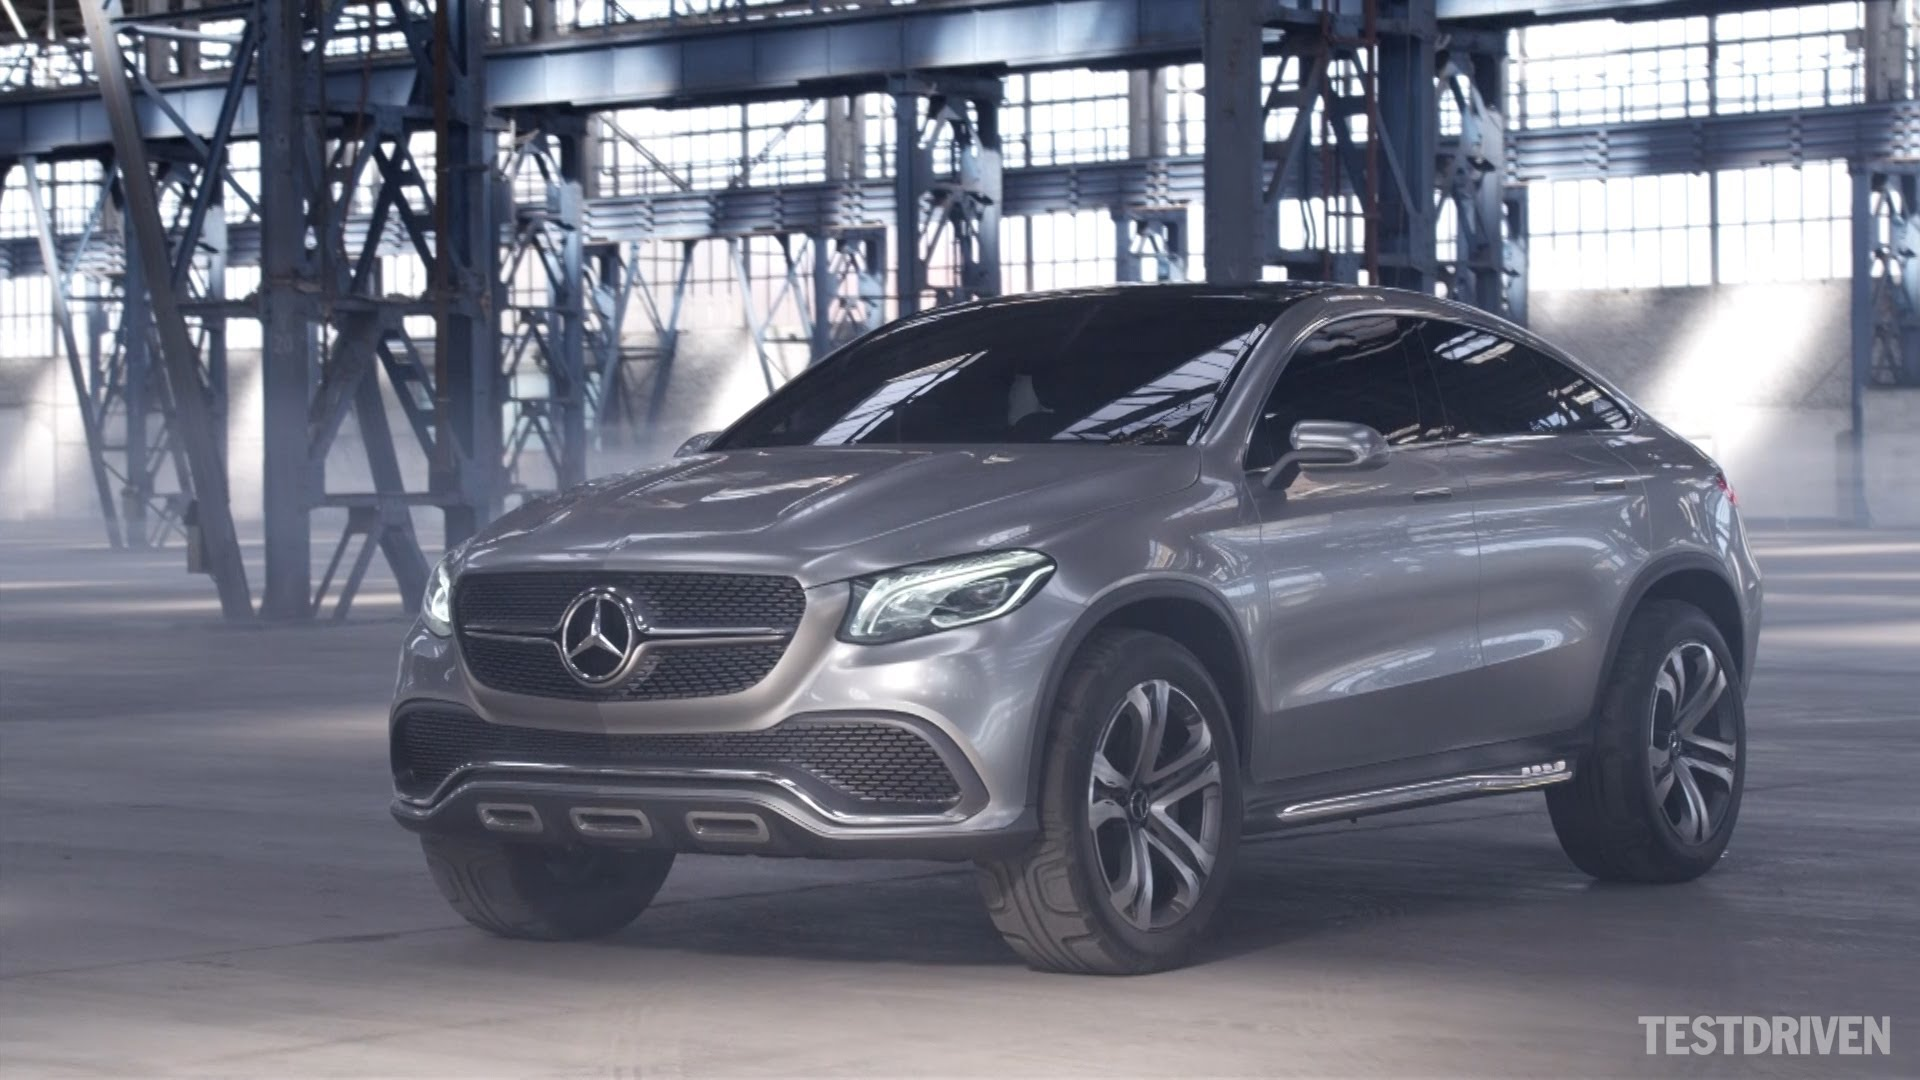 2019 Mercedes Benz Coupe SUV Concept photo - 3